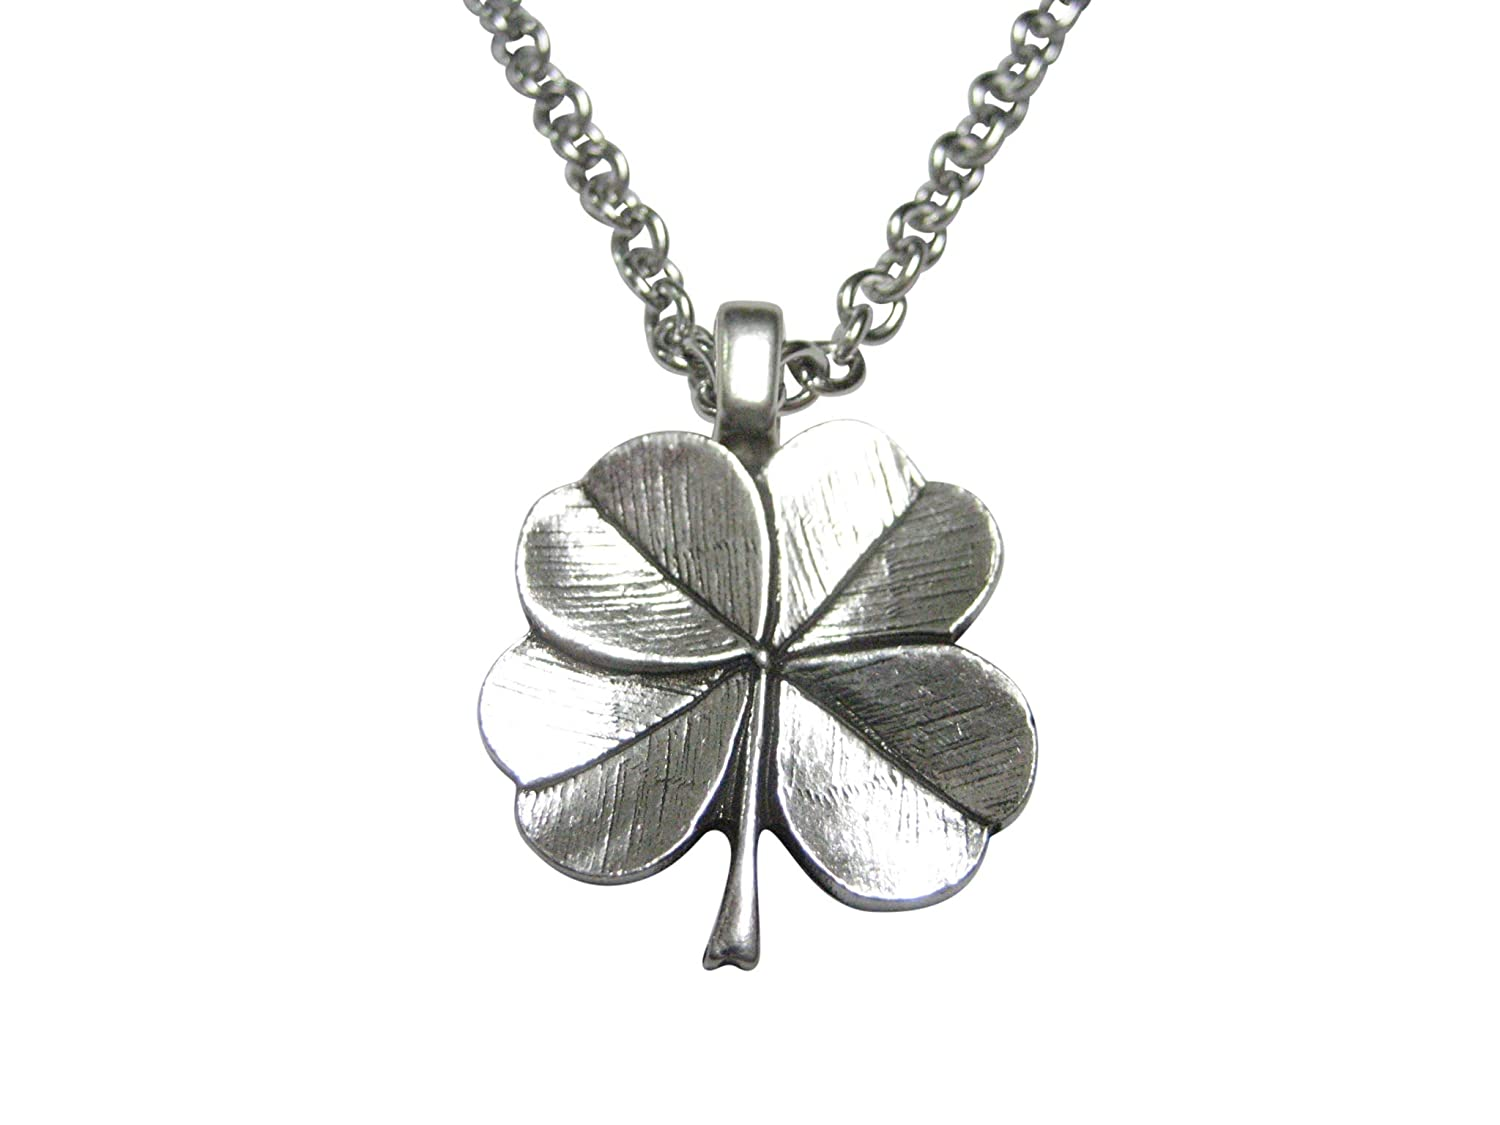 Kiola Designs Silver Toned Textured Lucky Four Leaf Clover Pendant Necklace